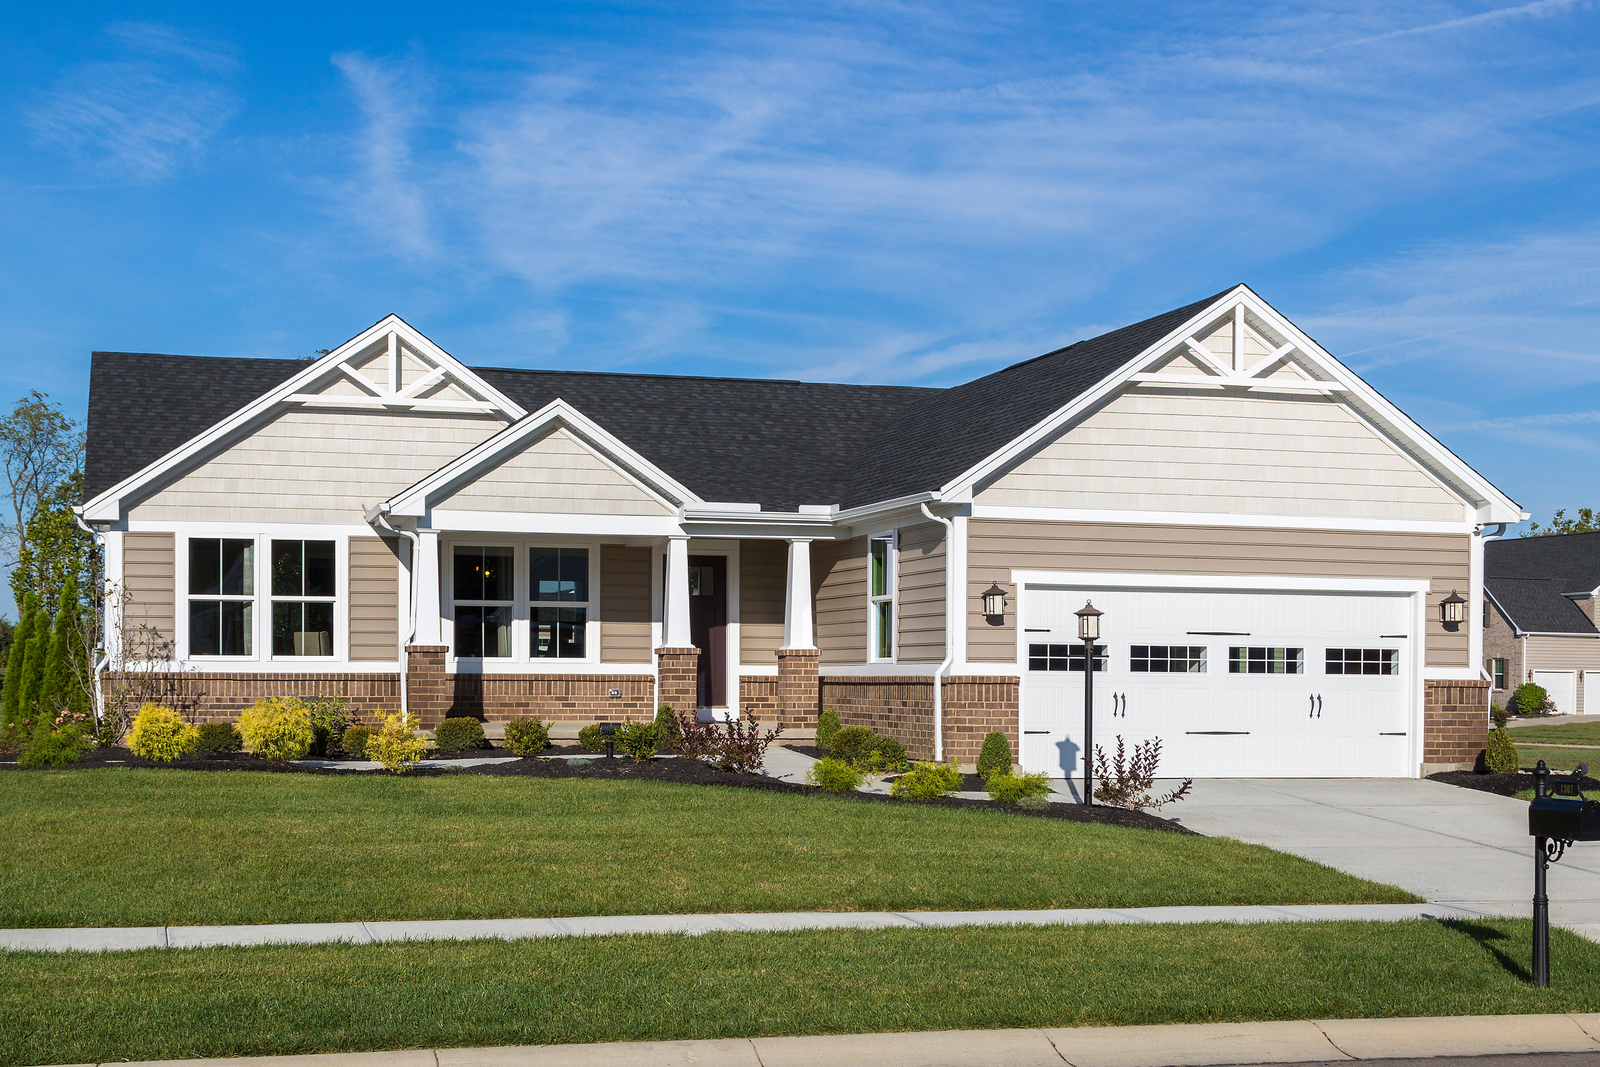 New Homes for sale at Brookview Farms in Jackson Township